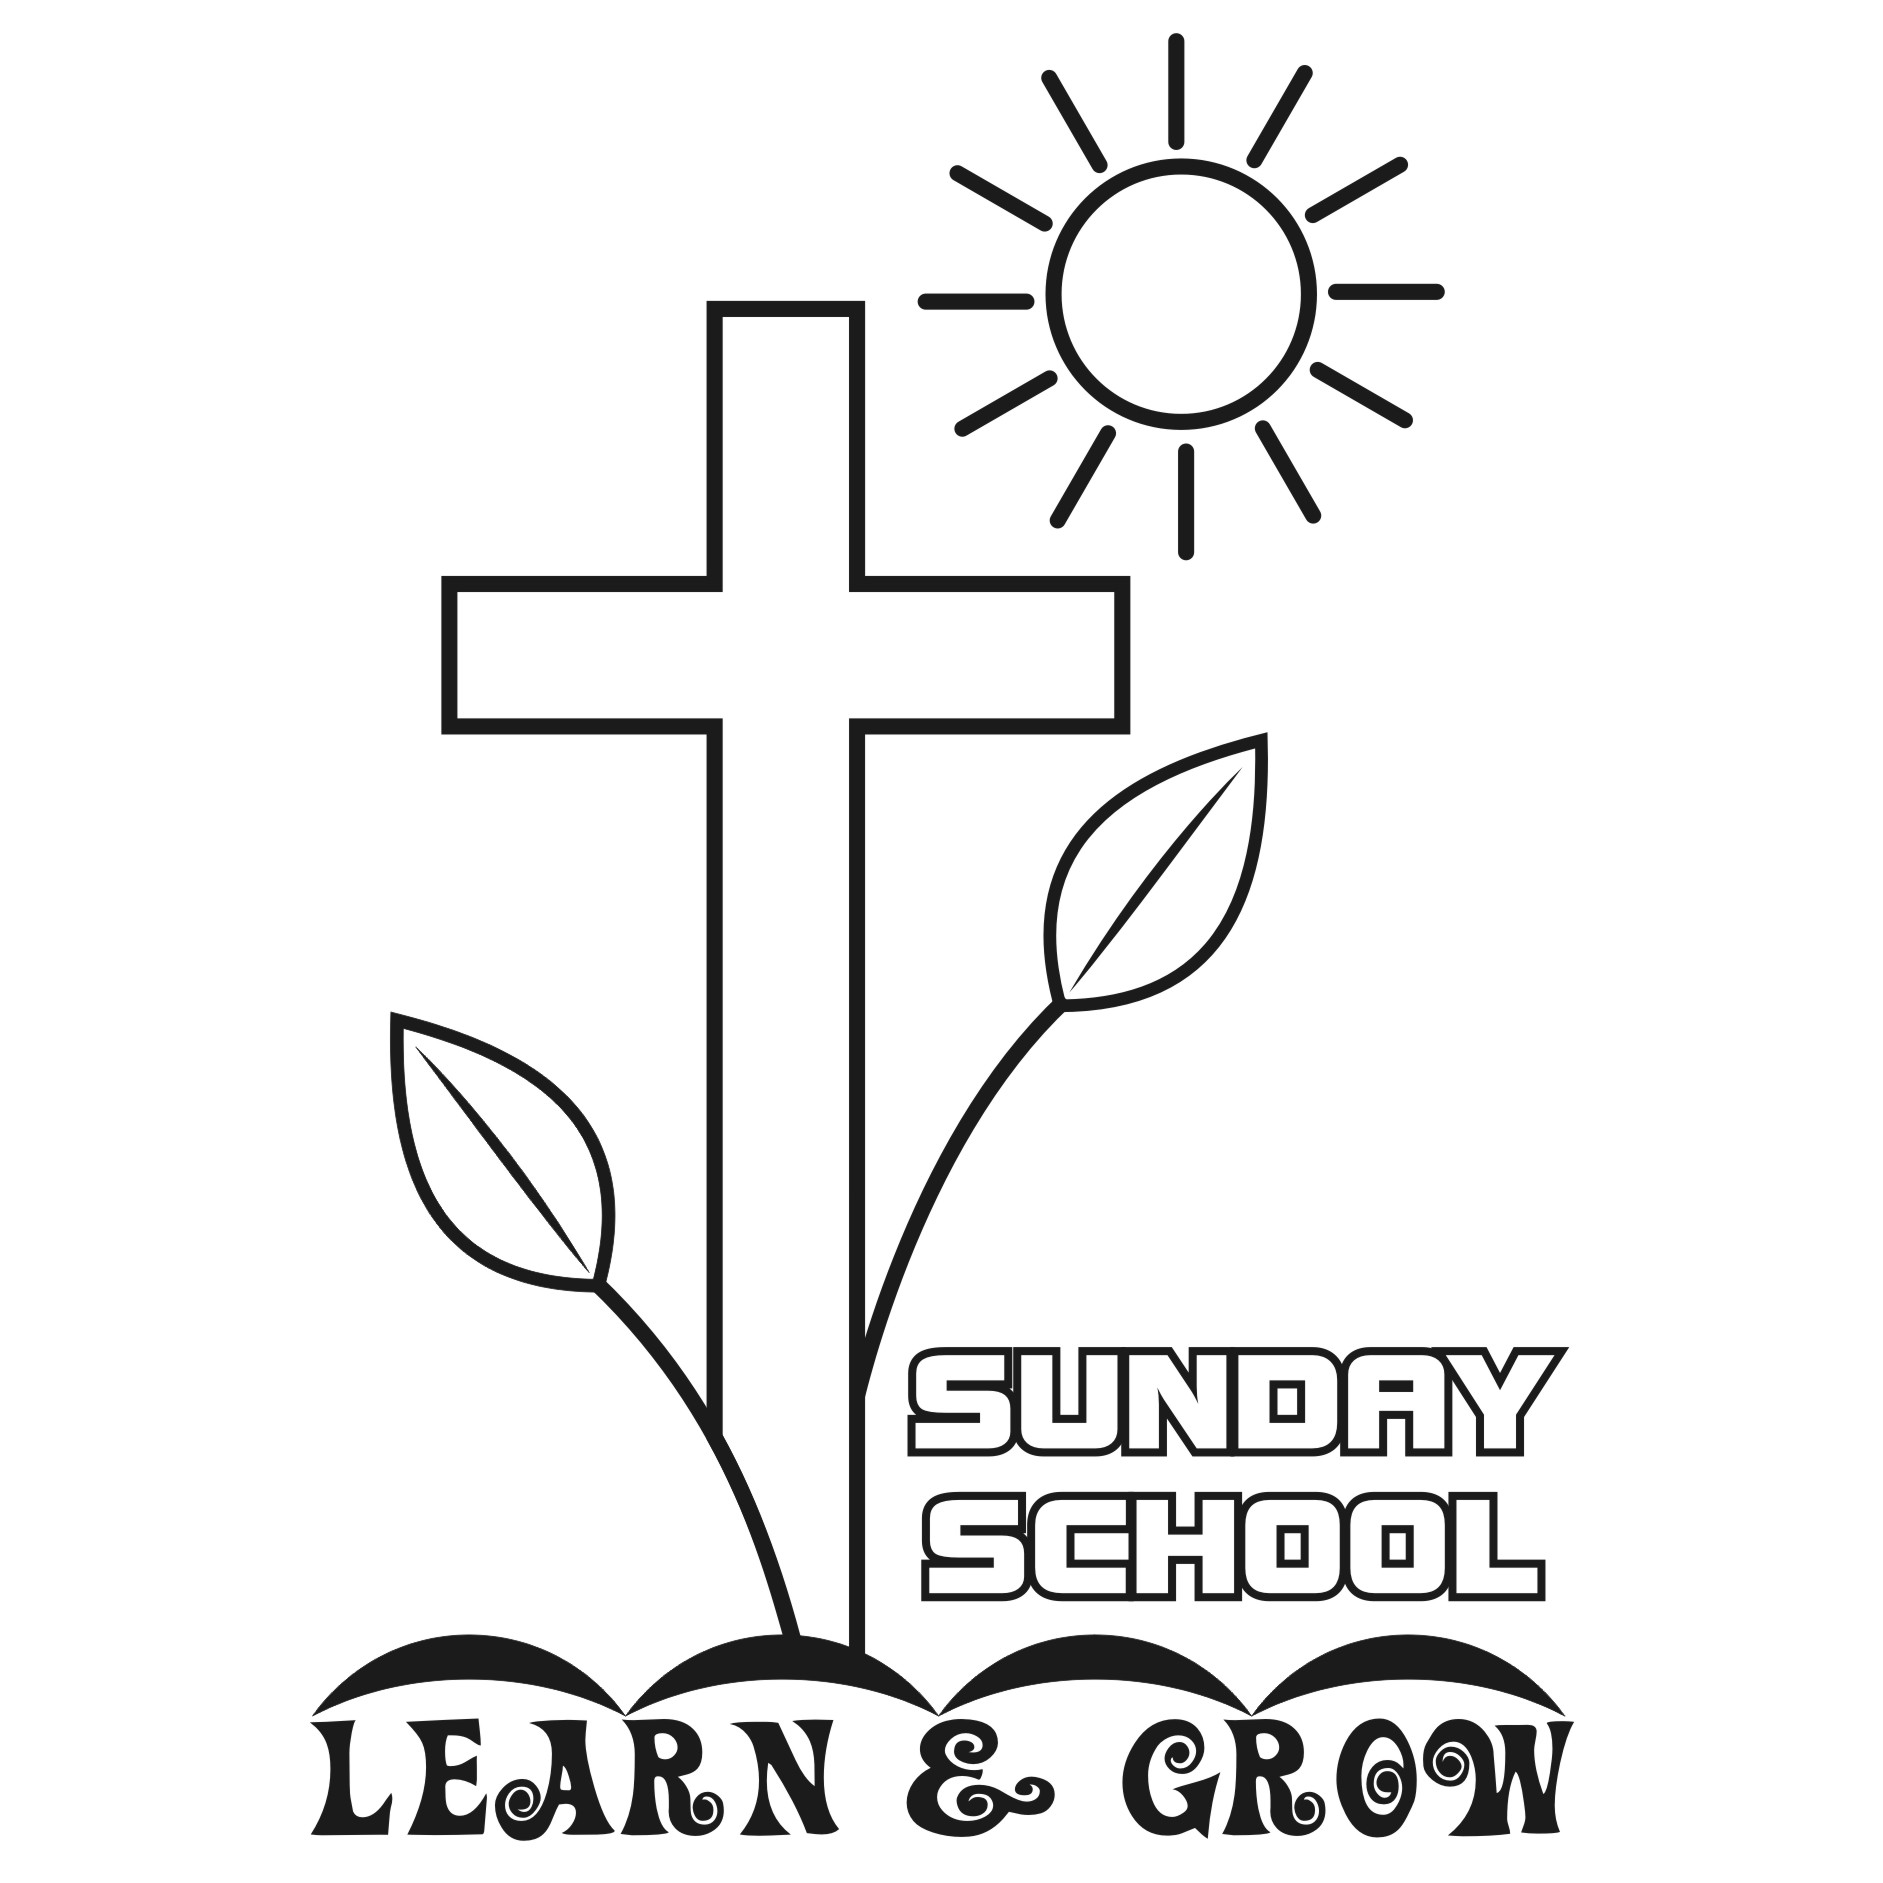 Sunday School Clipart - Clipart Kid